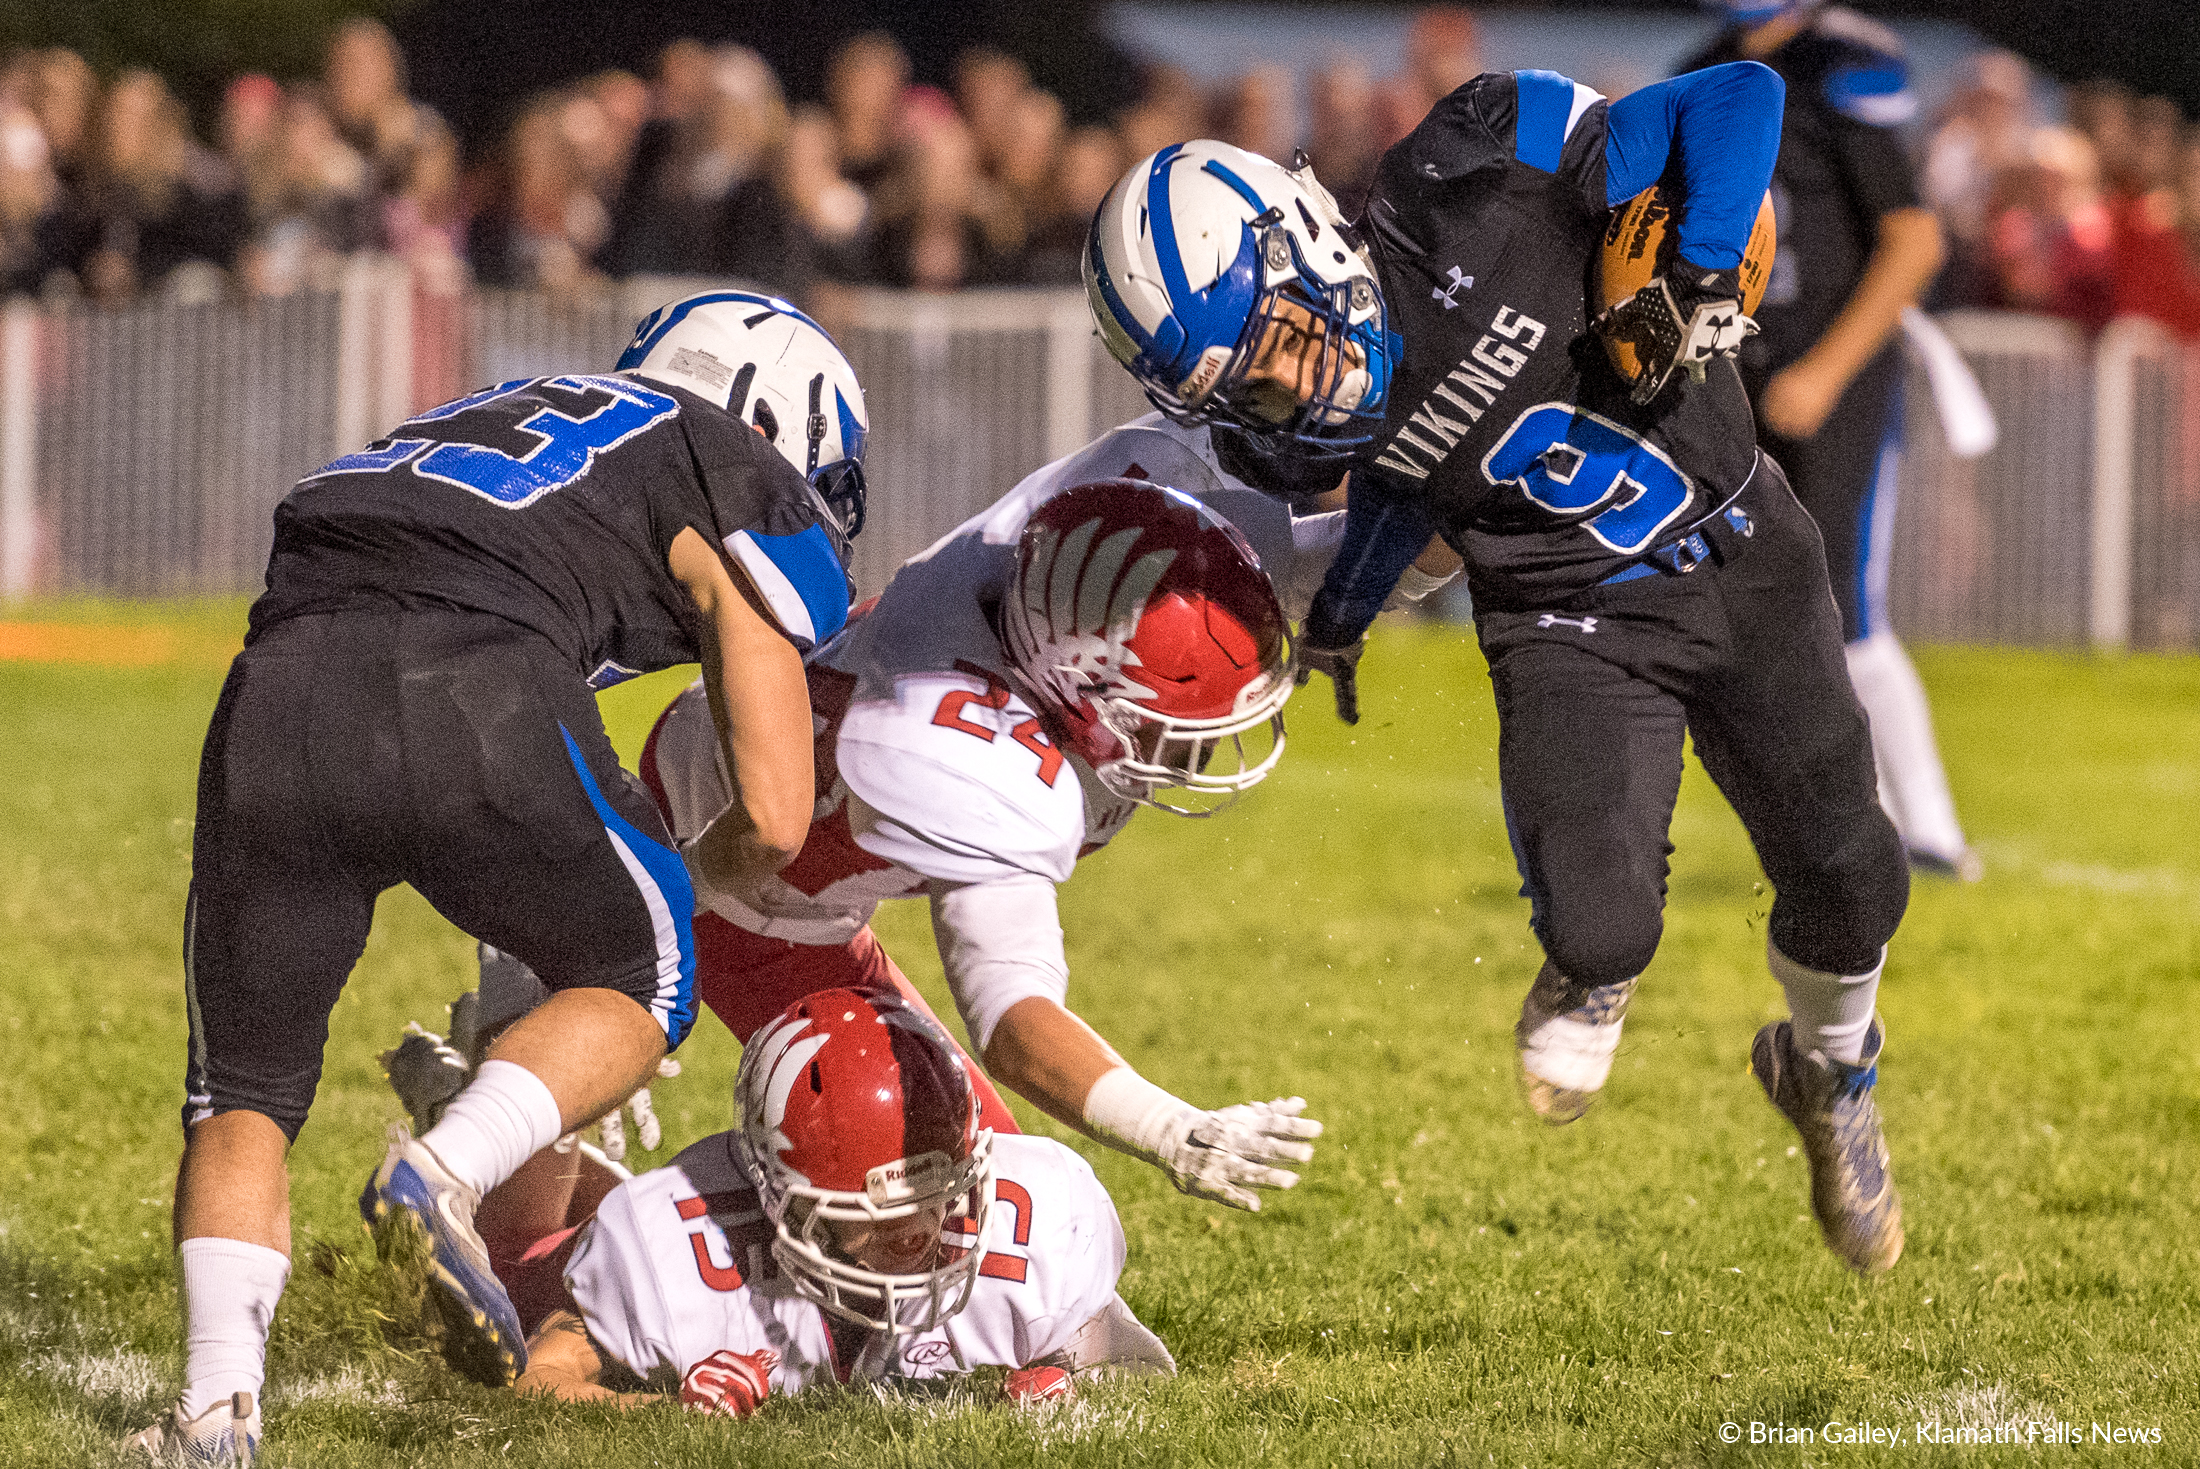 Mazama #9, Issy Gill RB avoids a tackle from KU's #24 Andrew Able DE. (Brian Gailey)